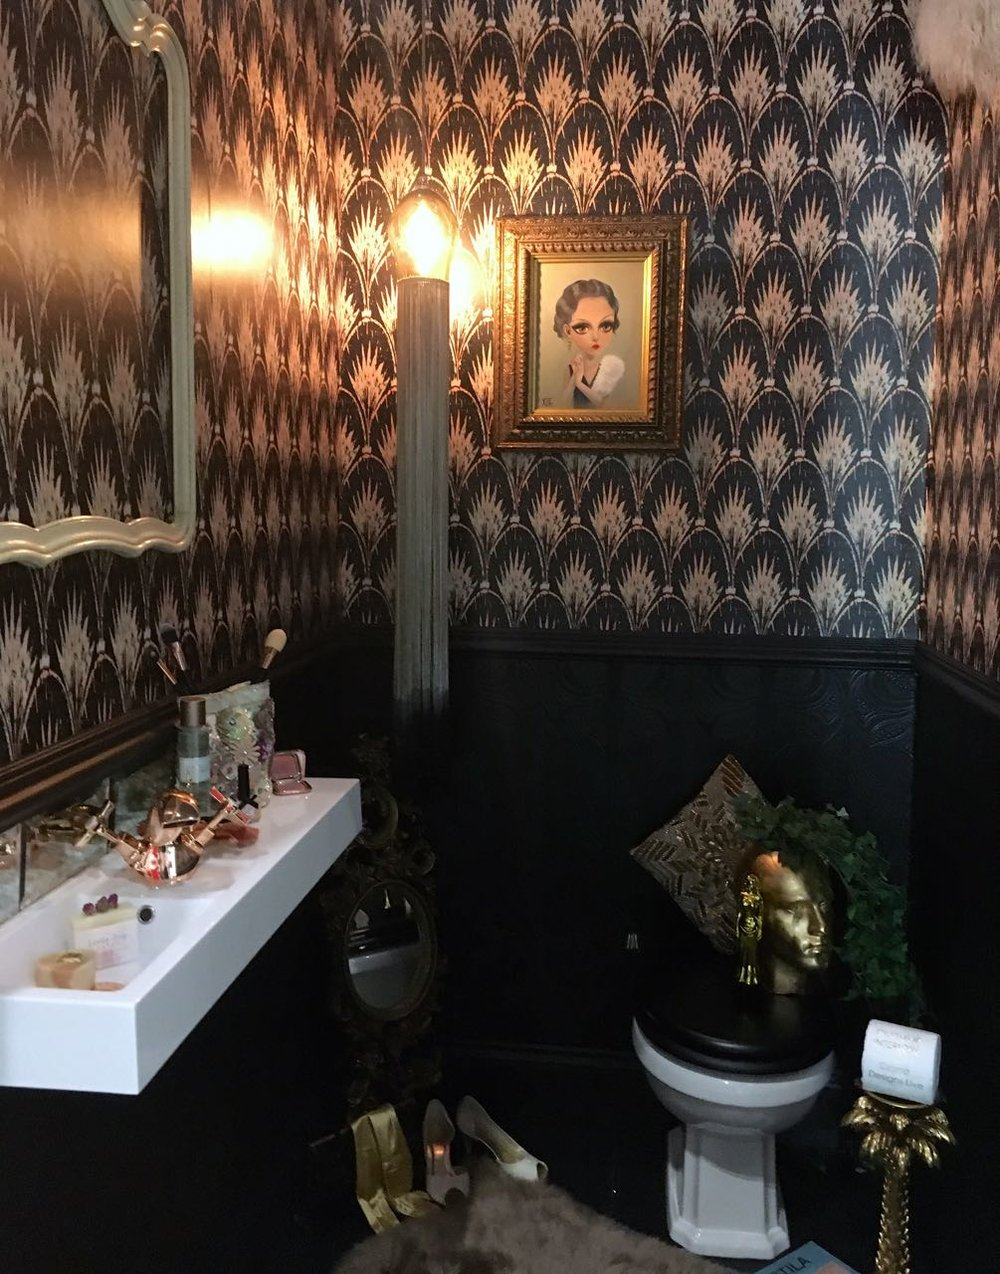 Fully of Hollywood glamour, the Outshine Lavatory Project